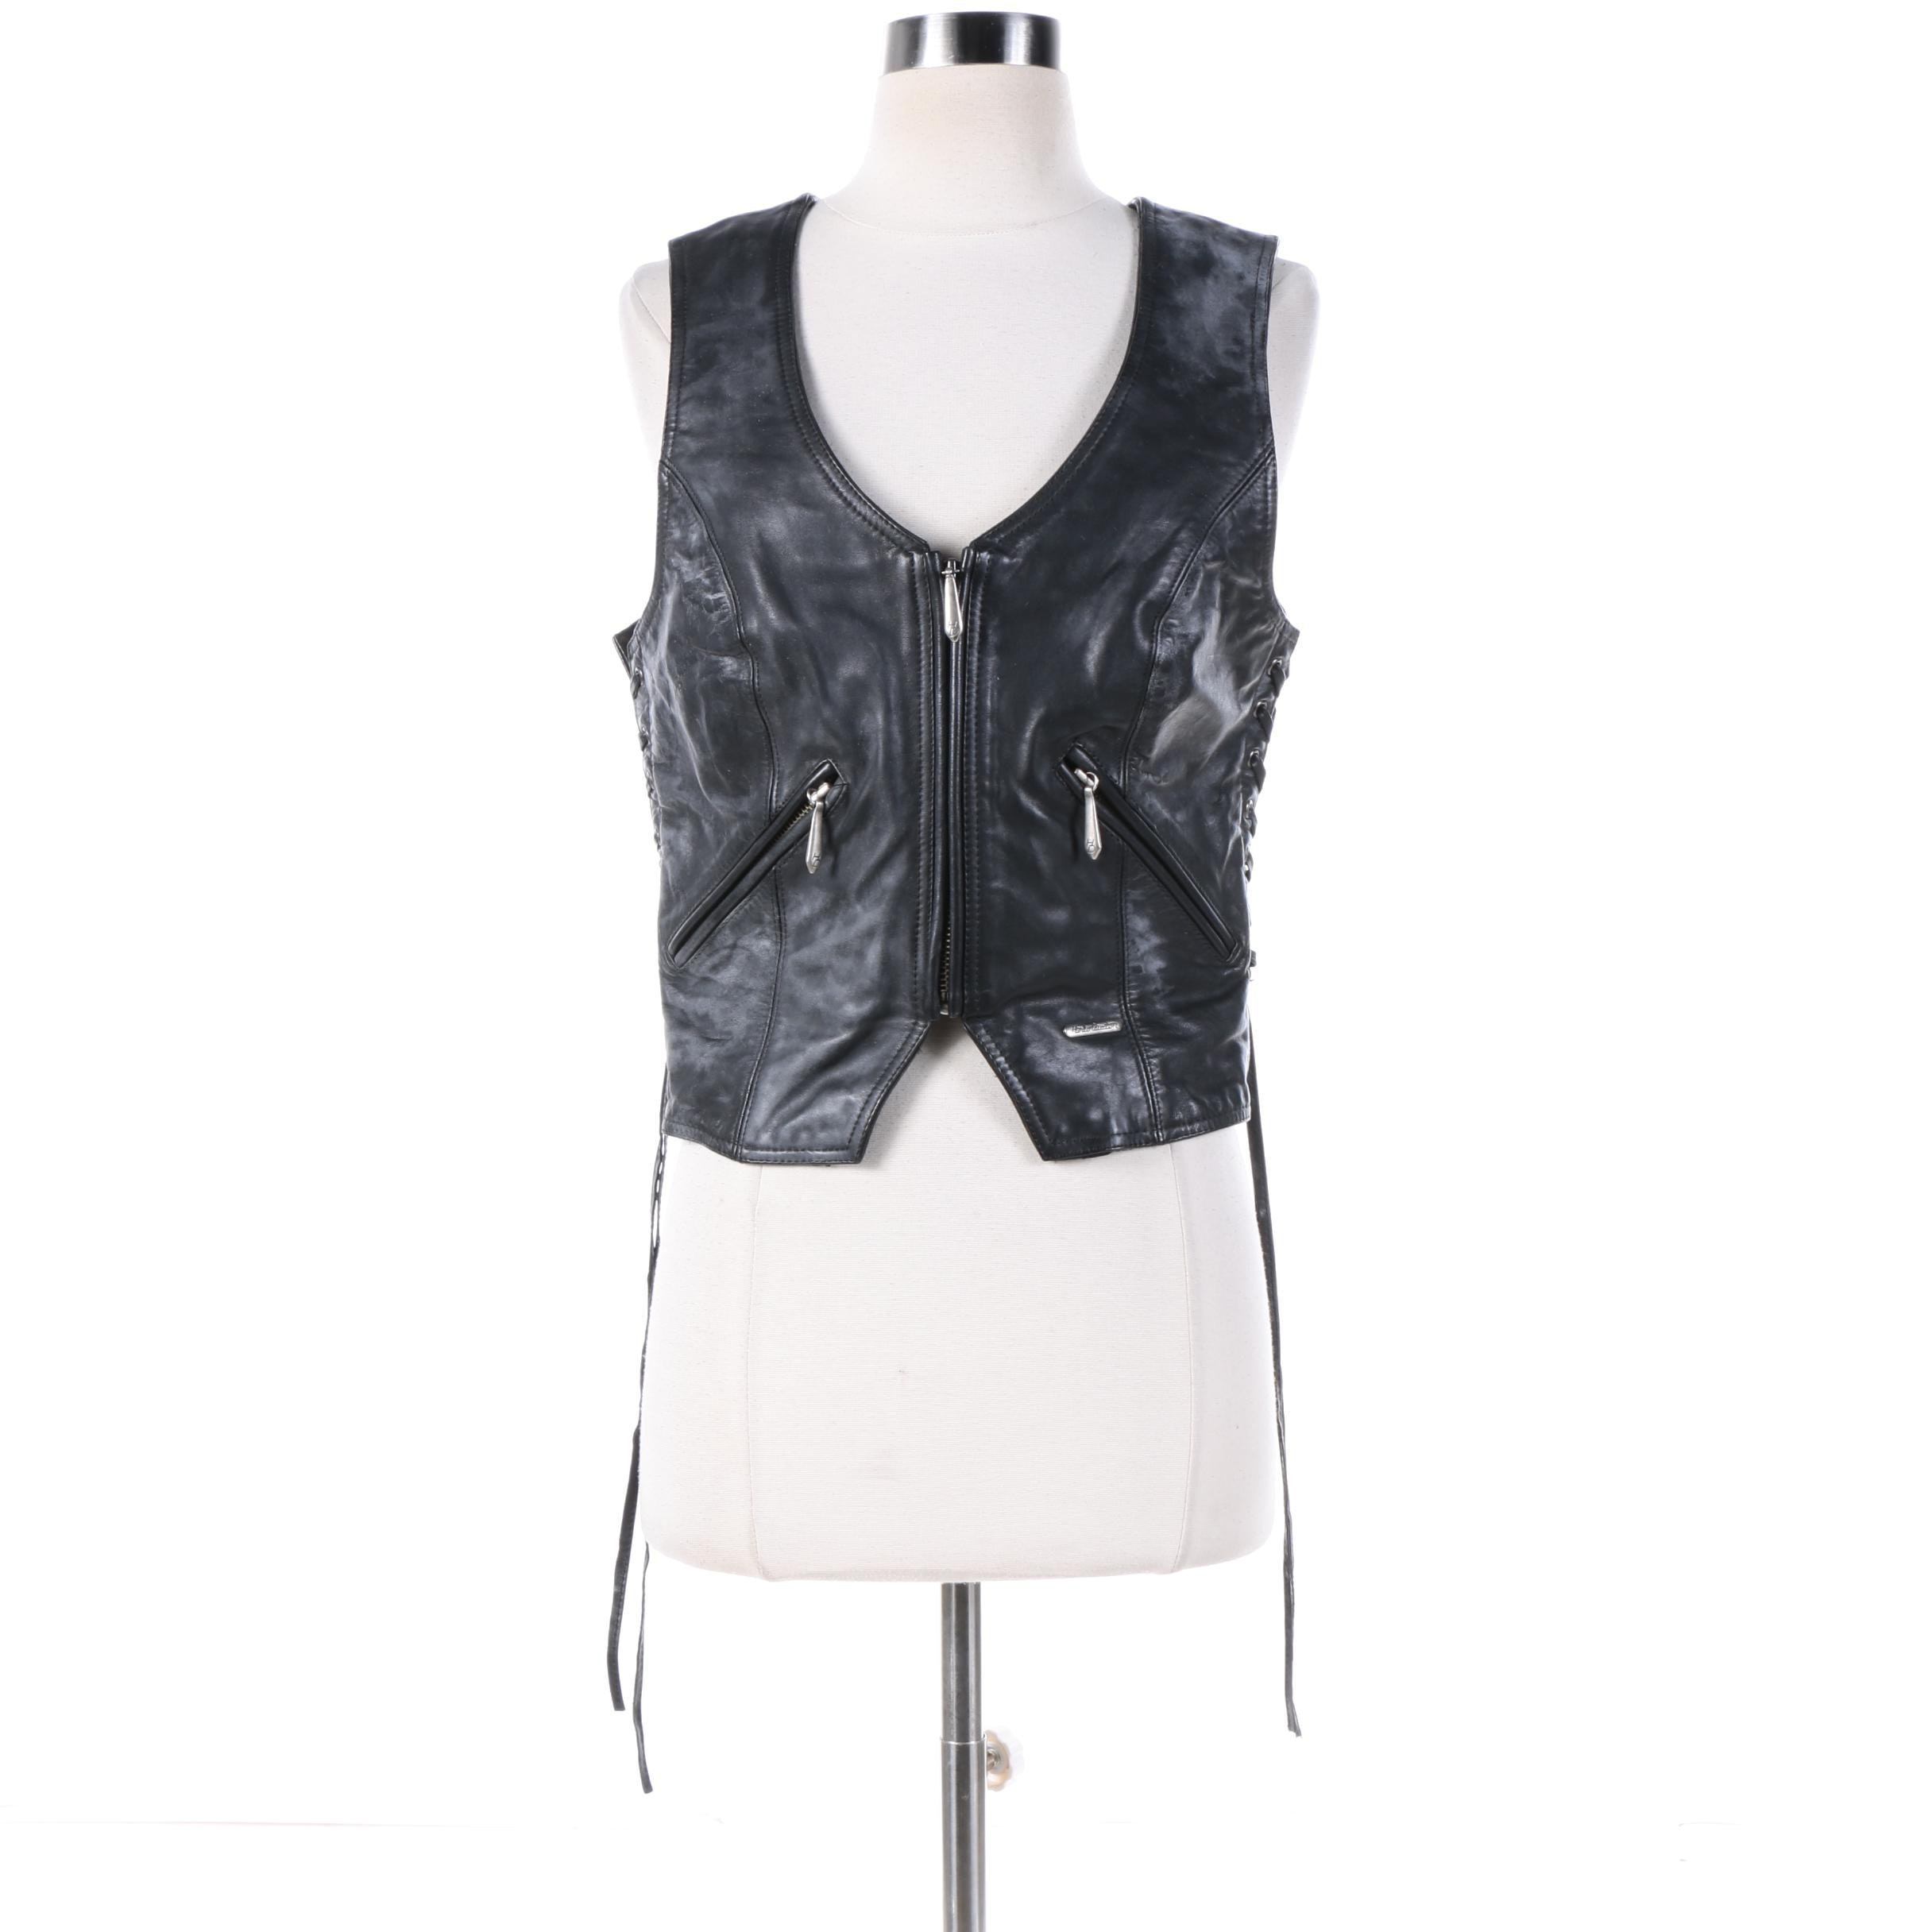 Women's Harley-Davidson Black Leather Vest with Lace-Up Details